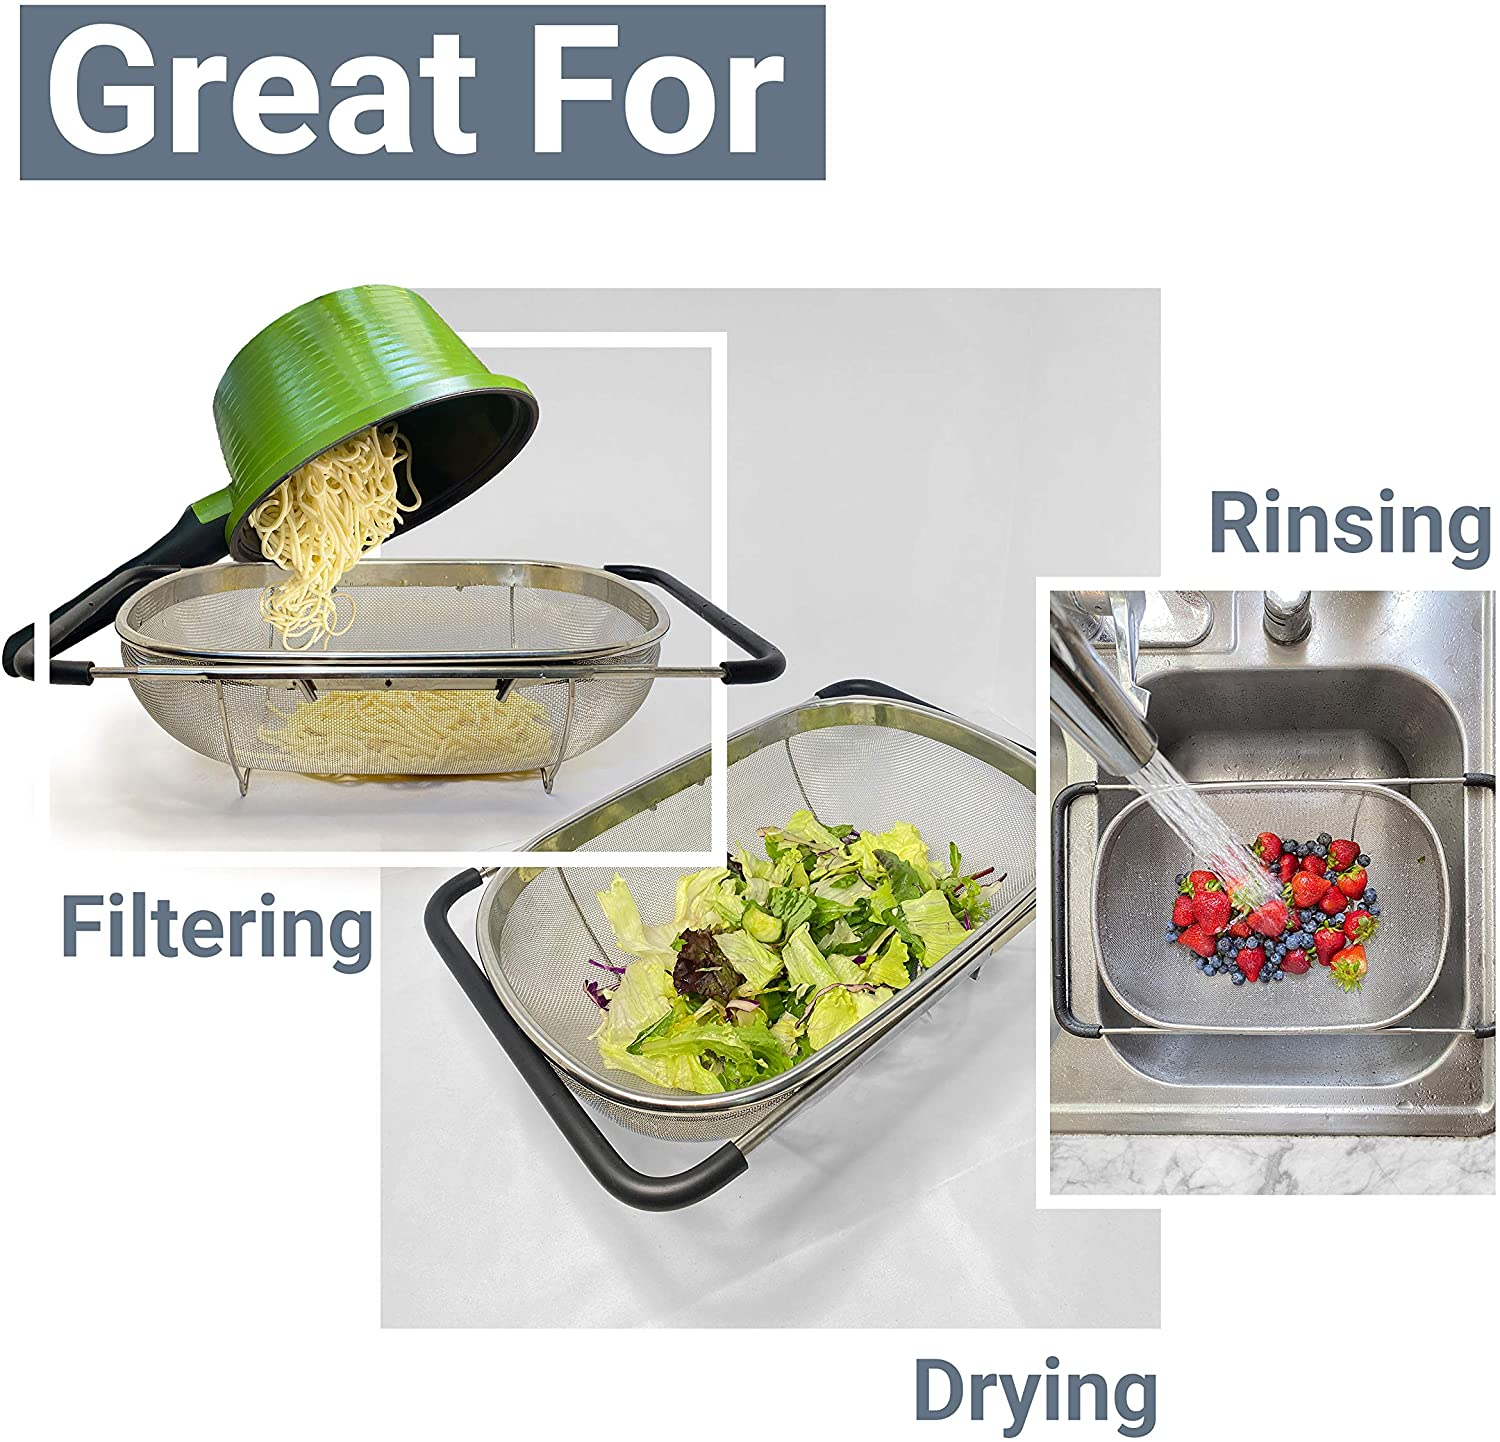 Stainless Steel Telescopic Drain Basket - BUY 2 FREE SHIPPING